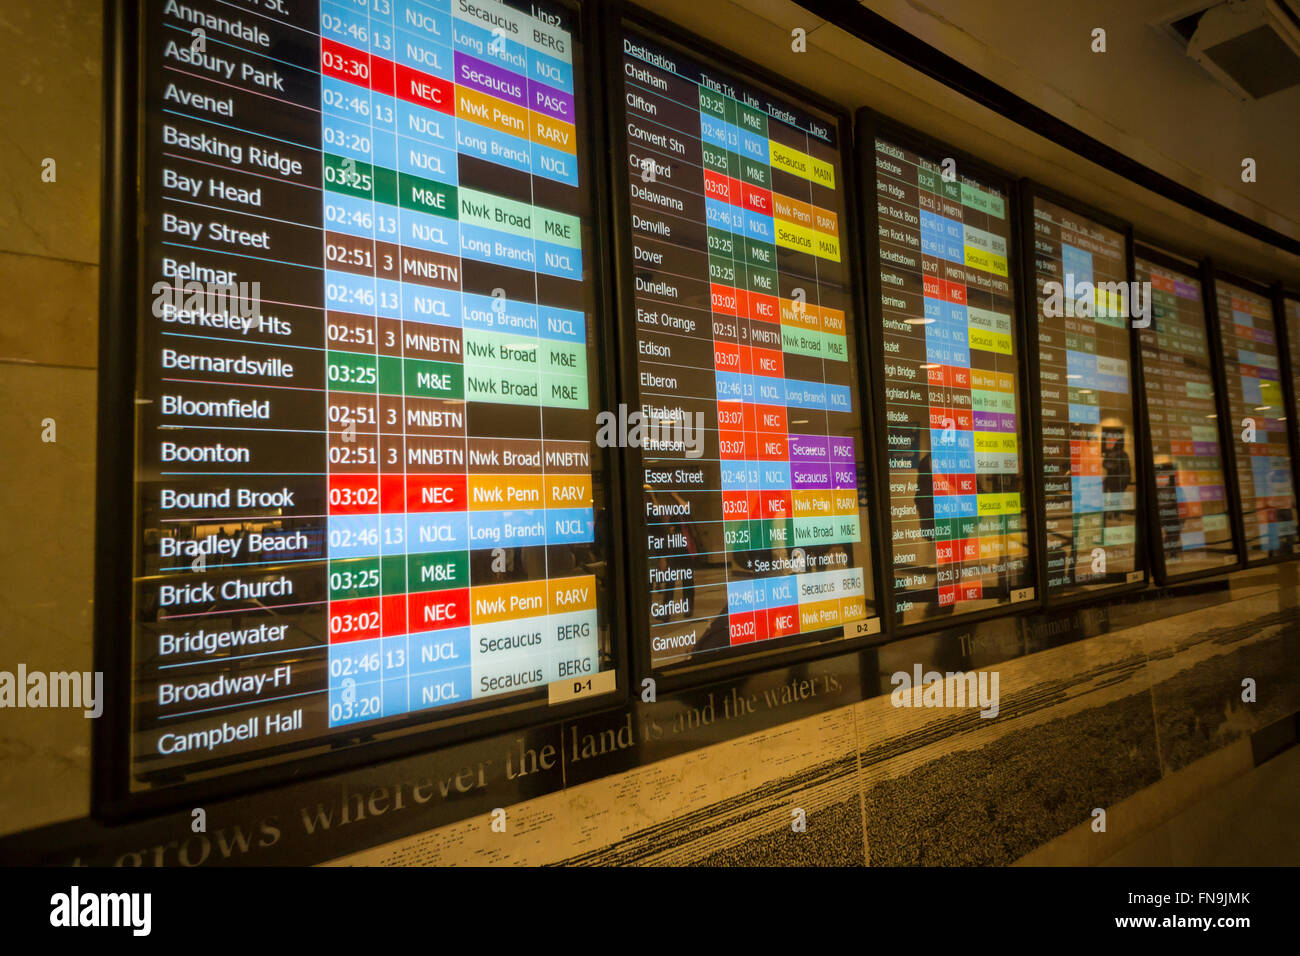 the train schedule in the nj transit station in penn station in new